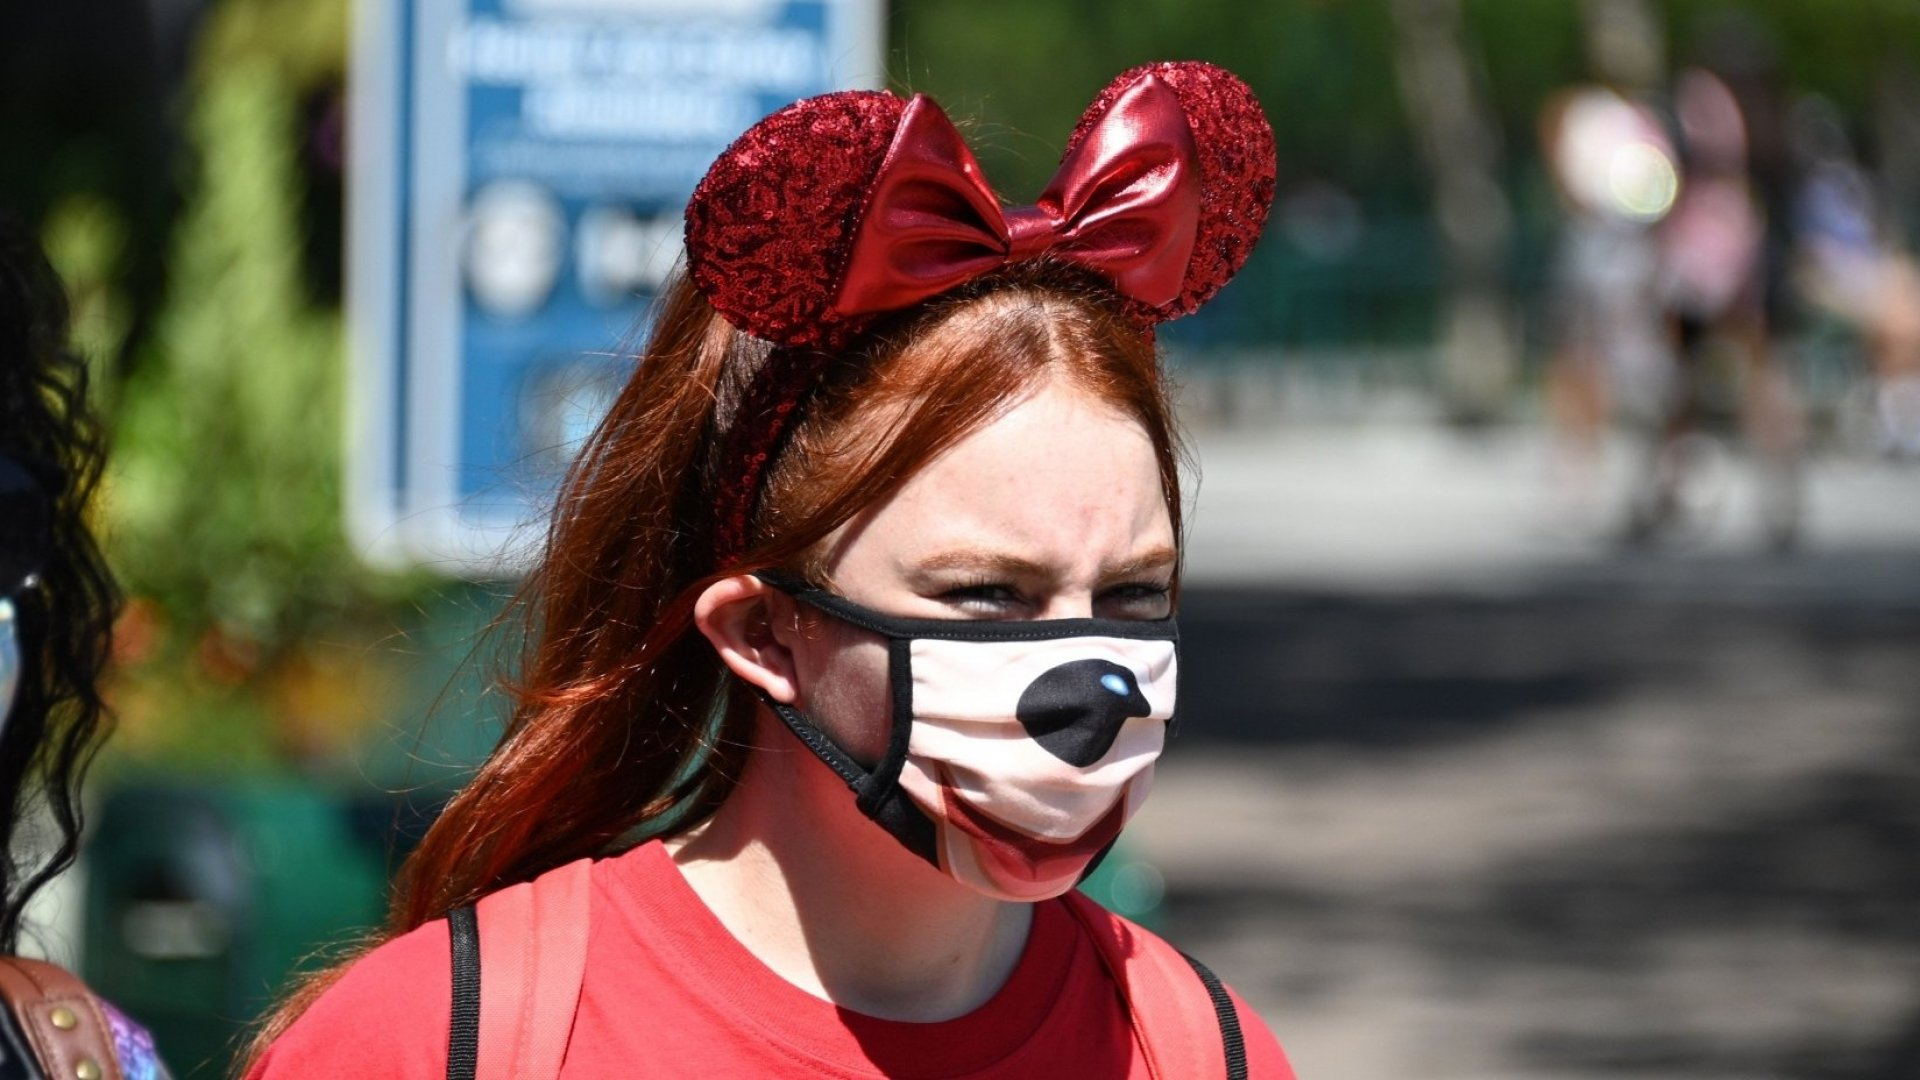 Disney World Is Reopening in Florida With Special Health Precautions